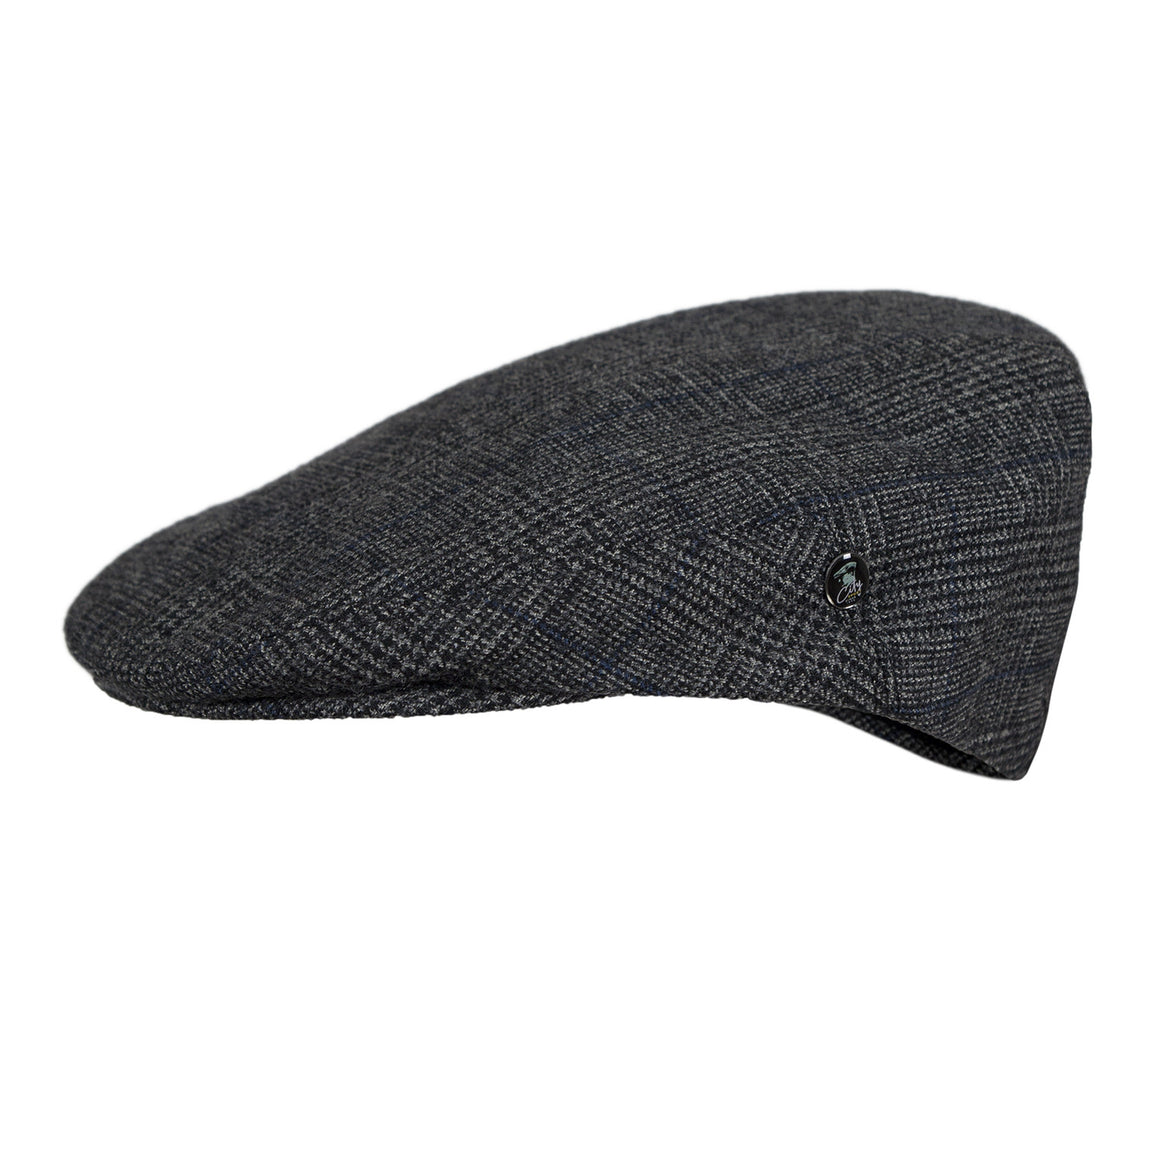 Wool Flat Cap | Grey Prince Charlie Check | buy now at The Cashmere Choice London